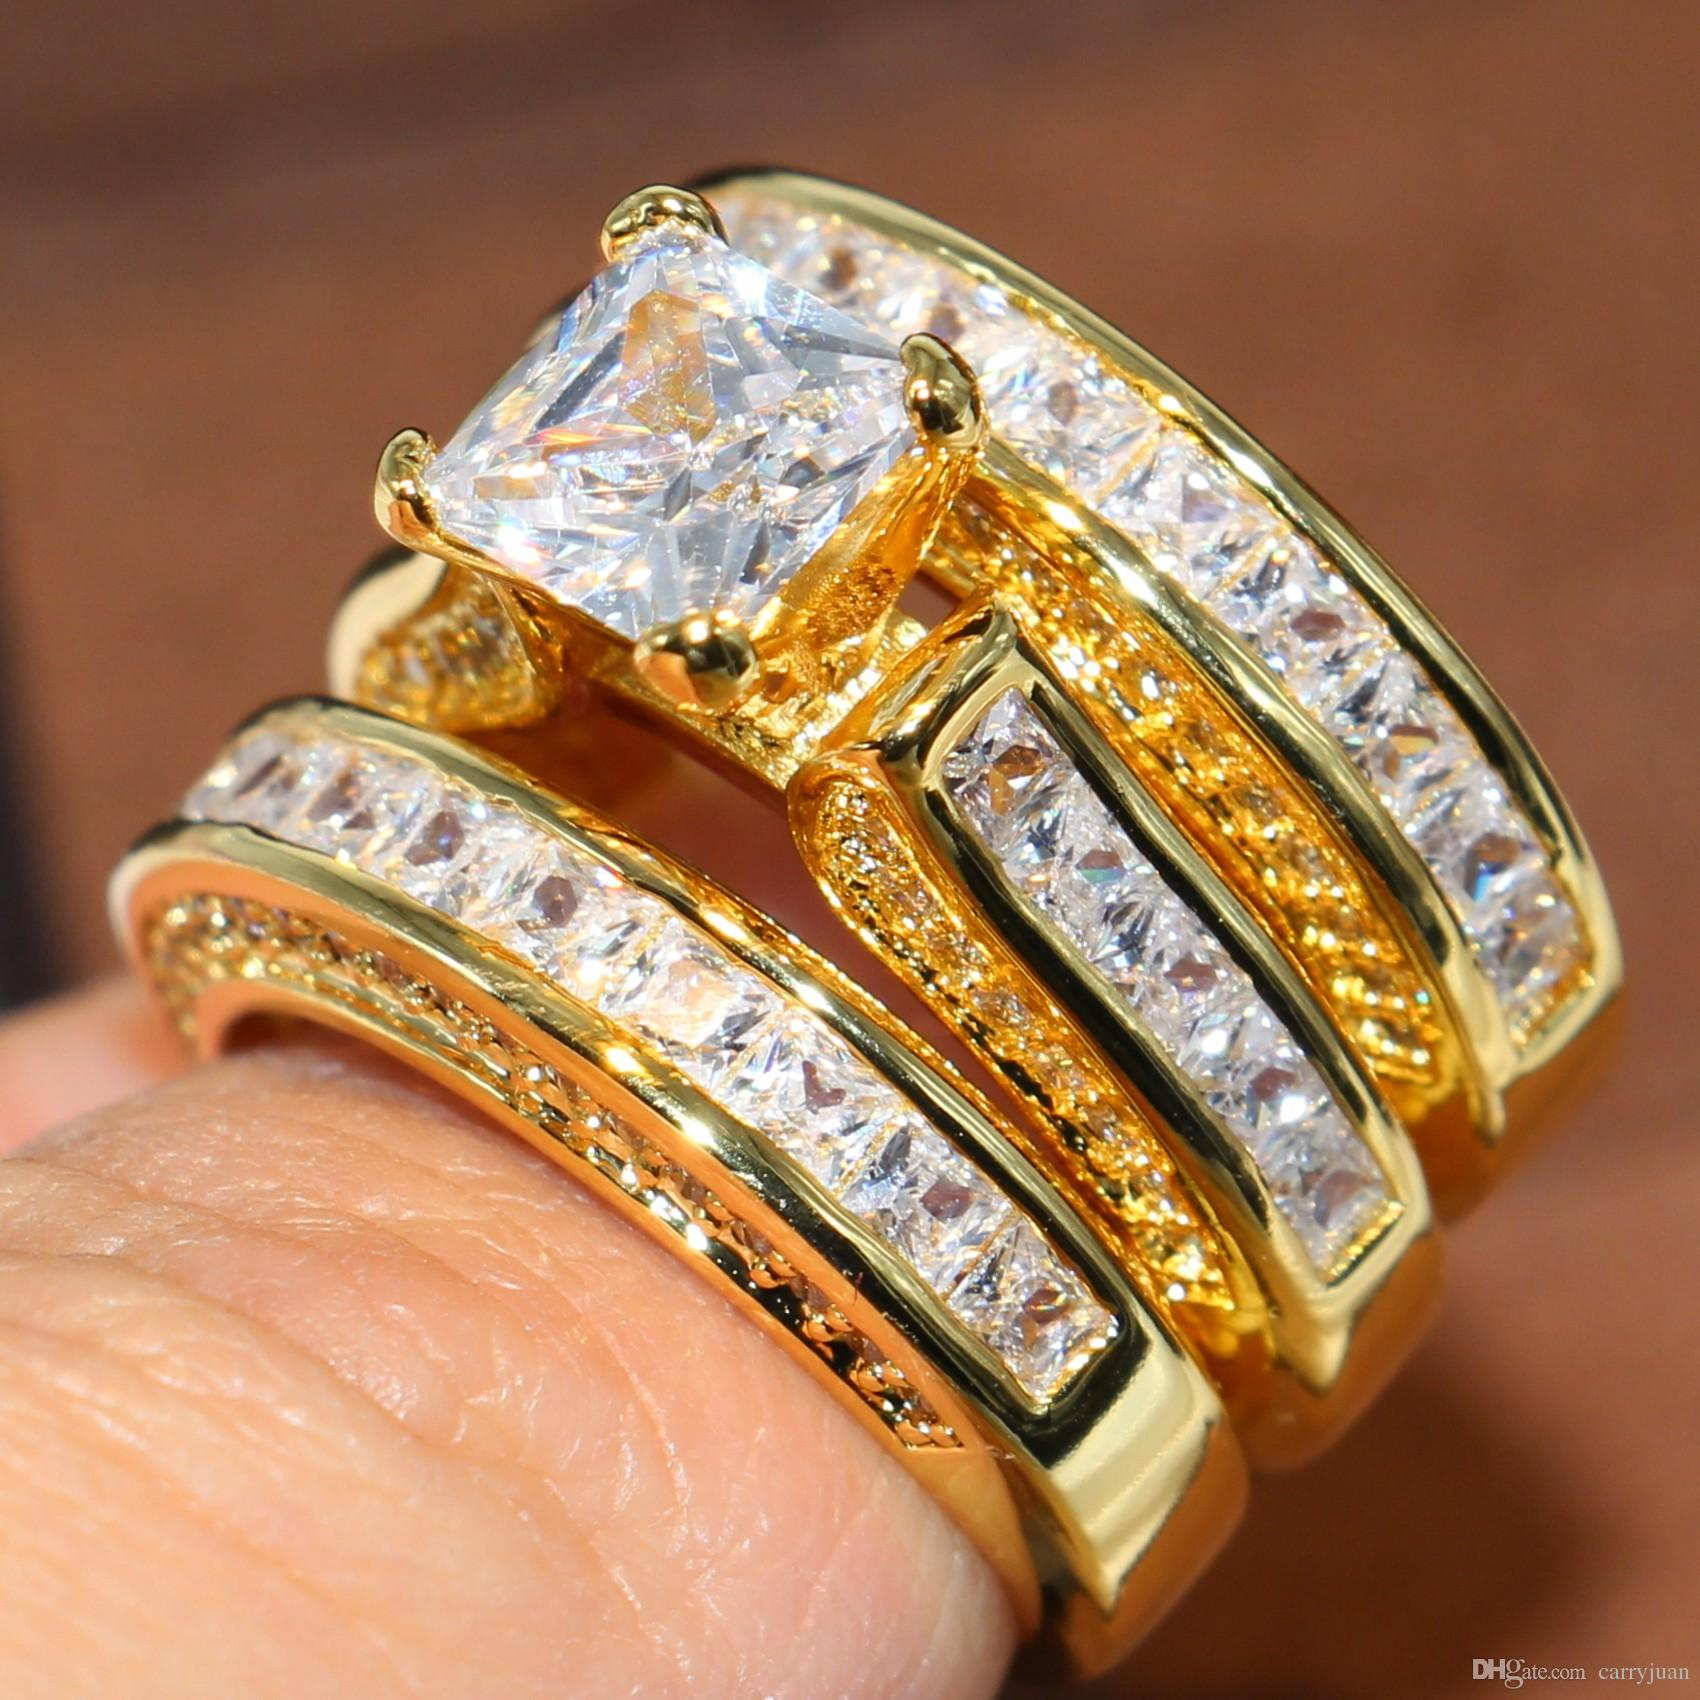 Victoria Wieck Sparkling Fashion Jewelry Princess Ring 14KT Yellow Gold Filled 3 IN 1 White Topaz Party CZ Diamond Women Wedding Bridal Ring